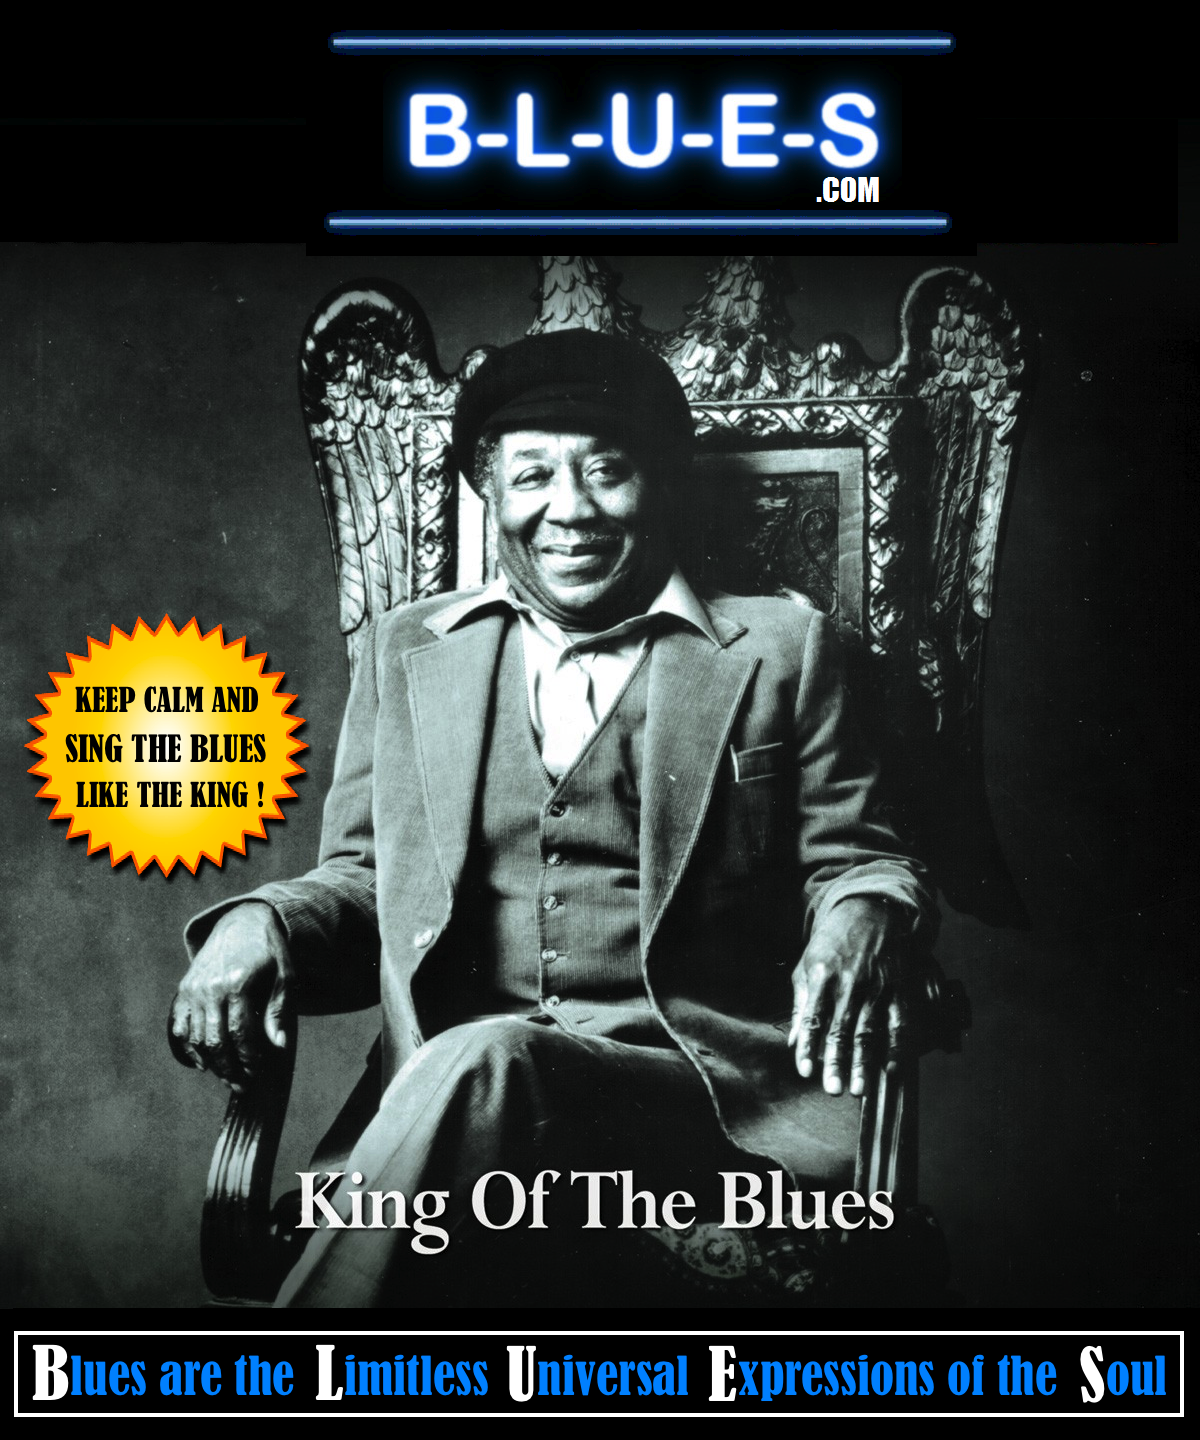 B-L-U-E-S.com | Keep Calm And Sing The Blues Like The King